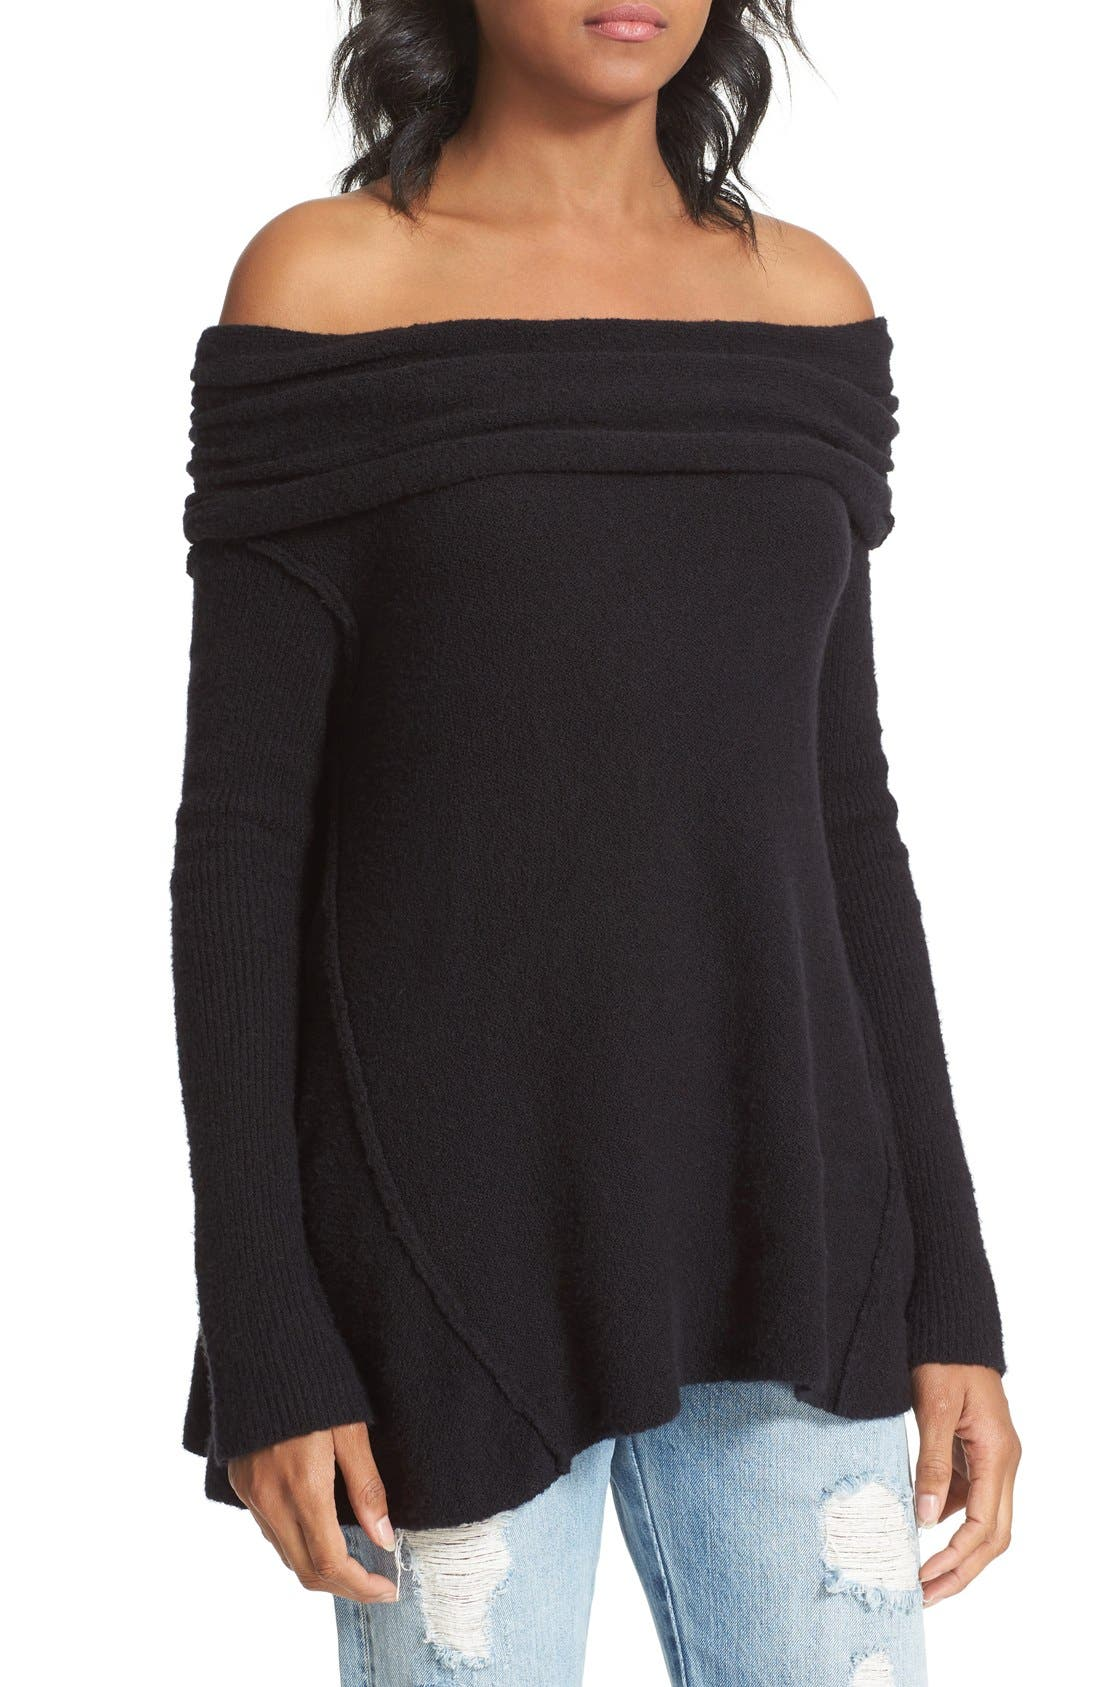 'Strawberry Fields' Off the Shoulder Sweater,                             Alternate thumbnail 4, color,                             Black